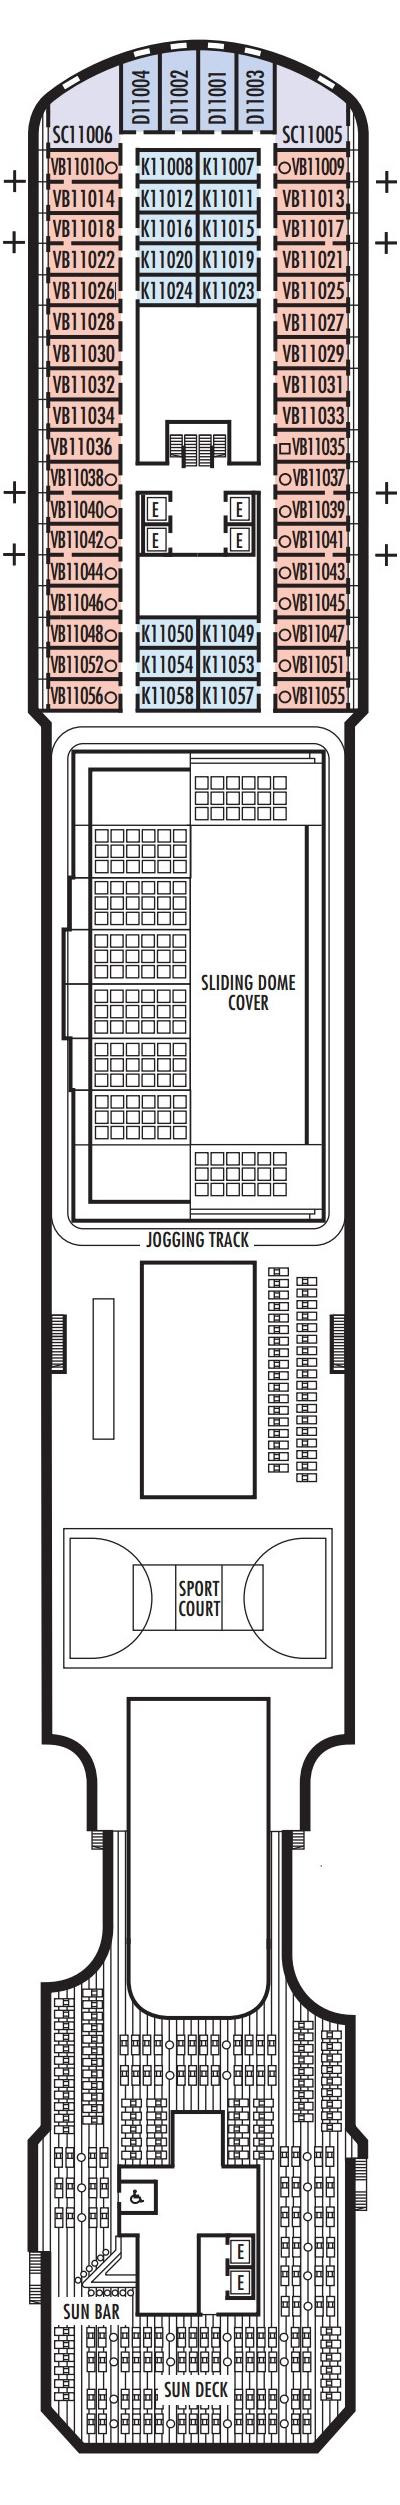 Koningsdam Sun Deck layout